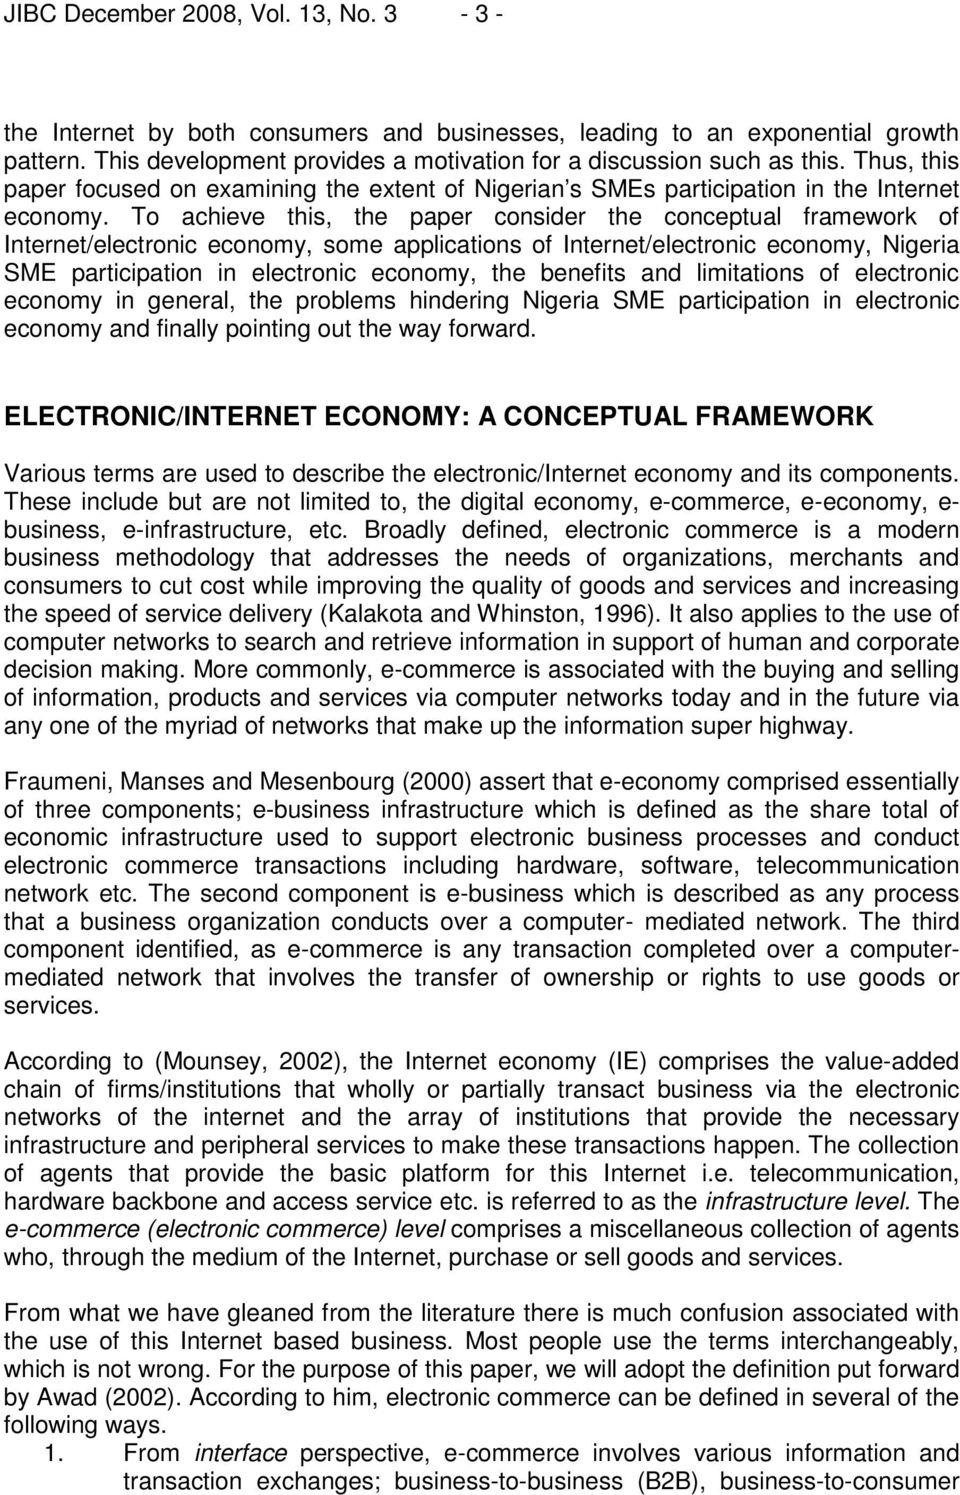 To achieve this, the paper consider the conceptual framework of Internet/electronic economy, some applications of Internet/electronic economy, Nigeria SME participation in electronic economy, the